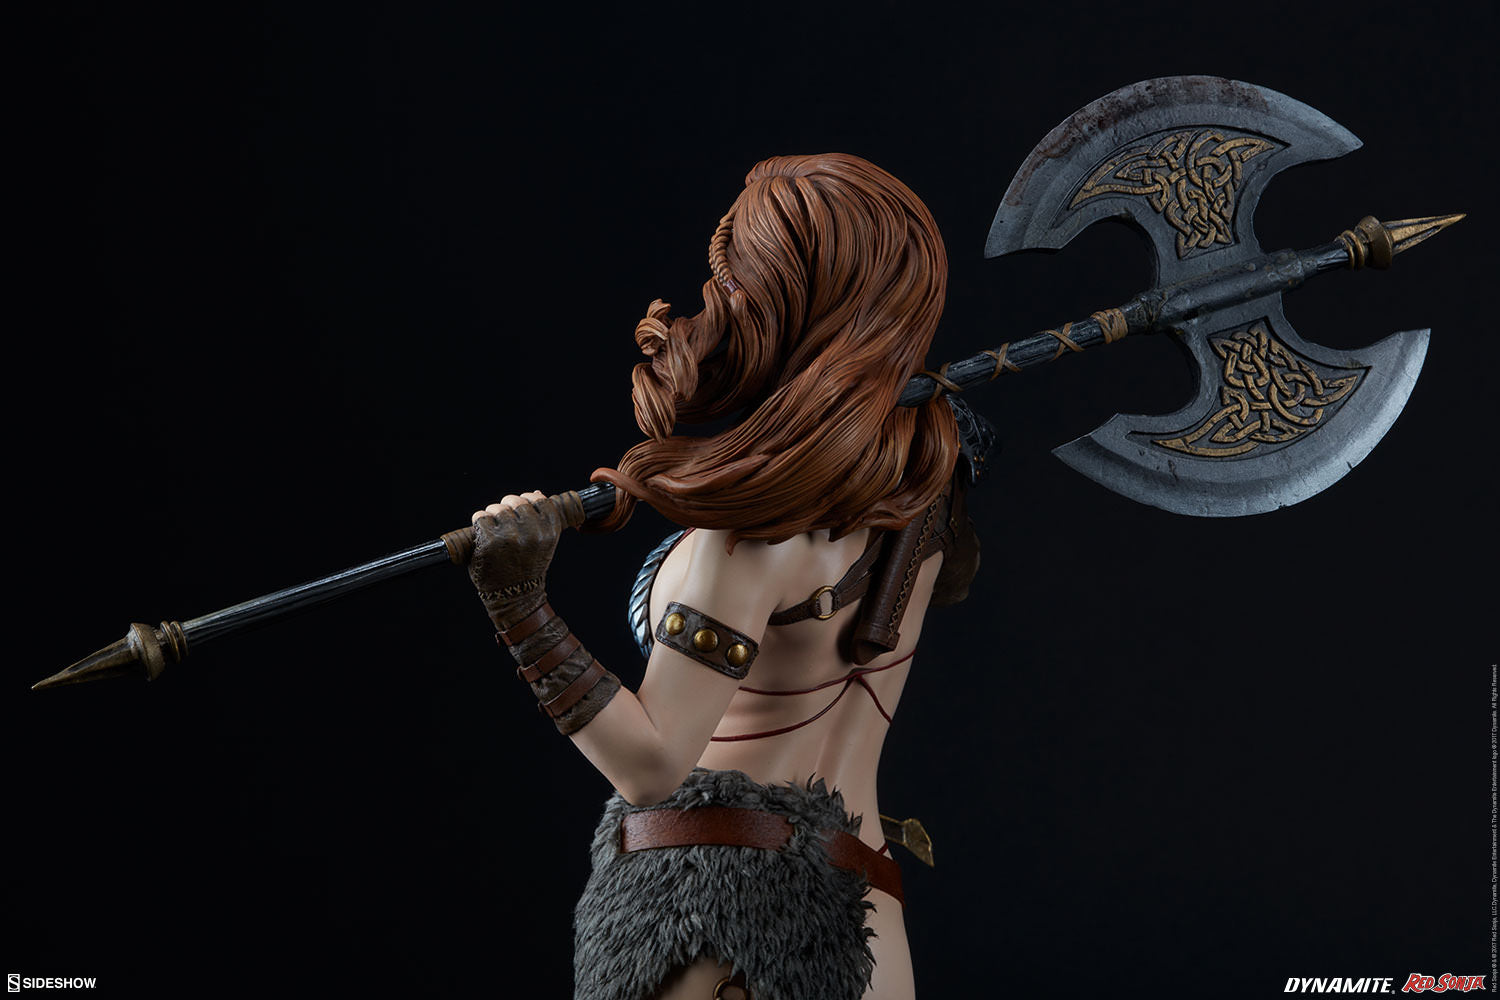 Sideshow Collectibles - Red Sonja: Queen of Scavengers - Premium Format Figure